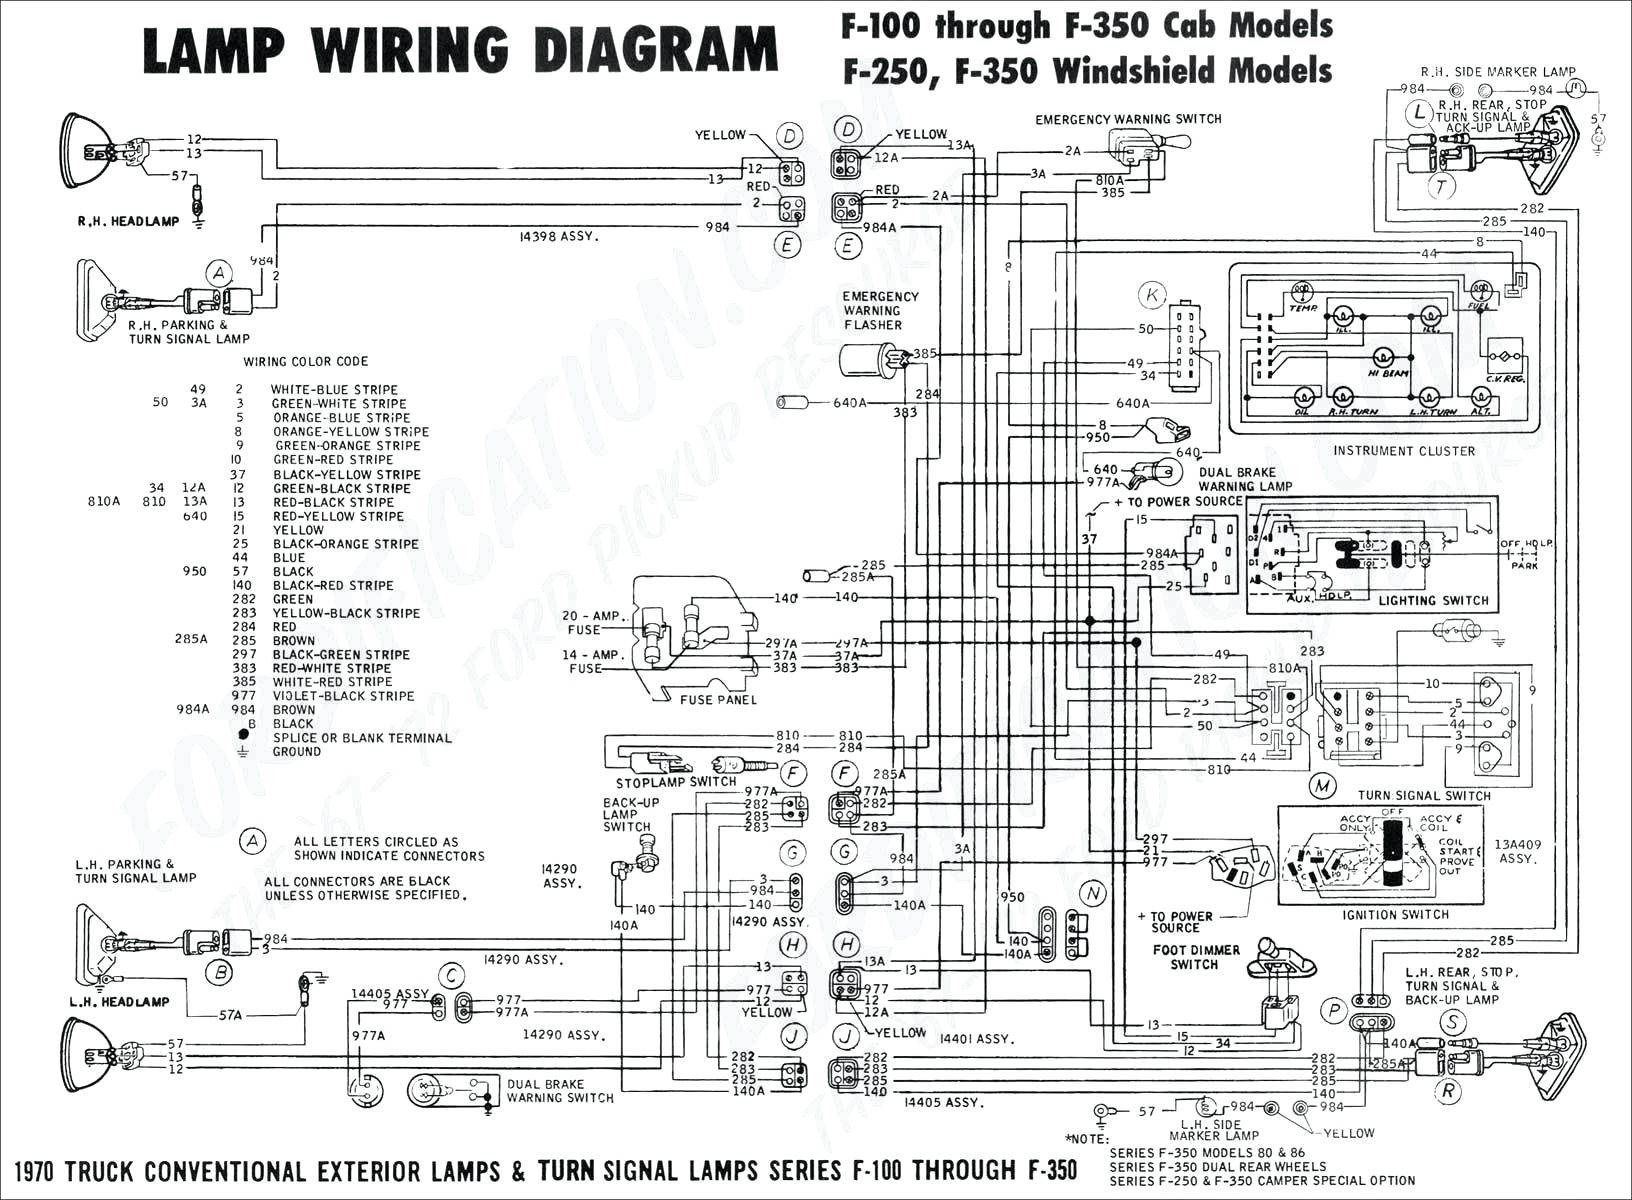 Wiring Harness Drawing For 67 Ford F100 Free Vehicle Diagrams 1964 Falcon 1967 Auto Electrical Diagram U2022 Rh Focusnews Co Mirror Used